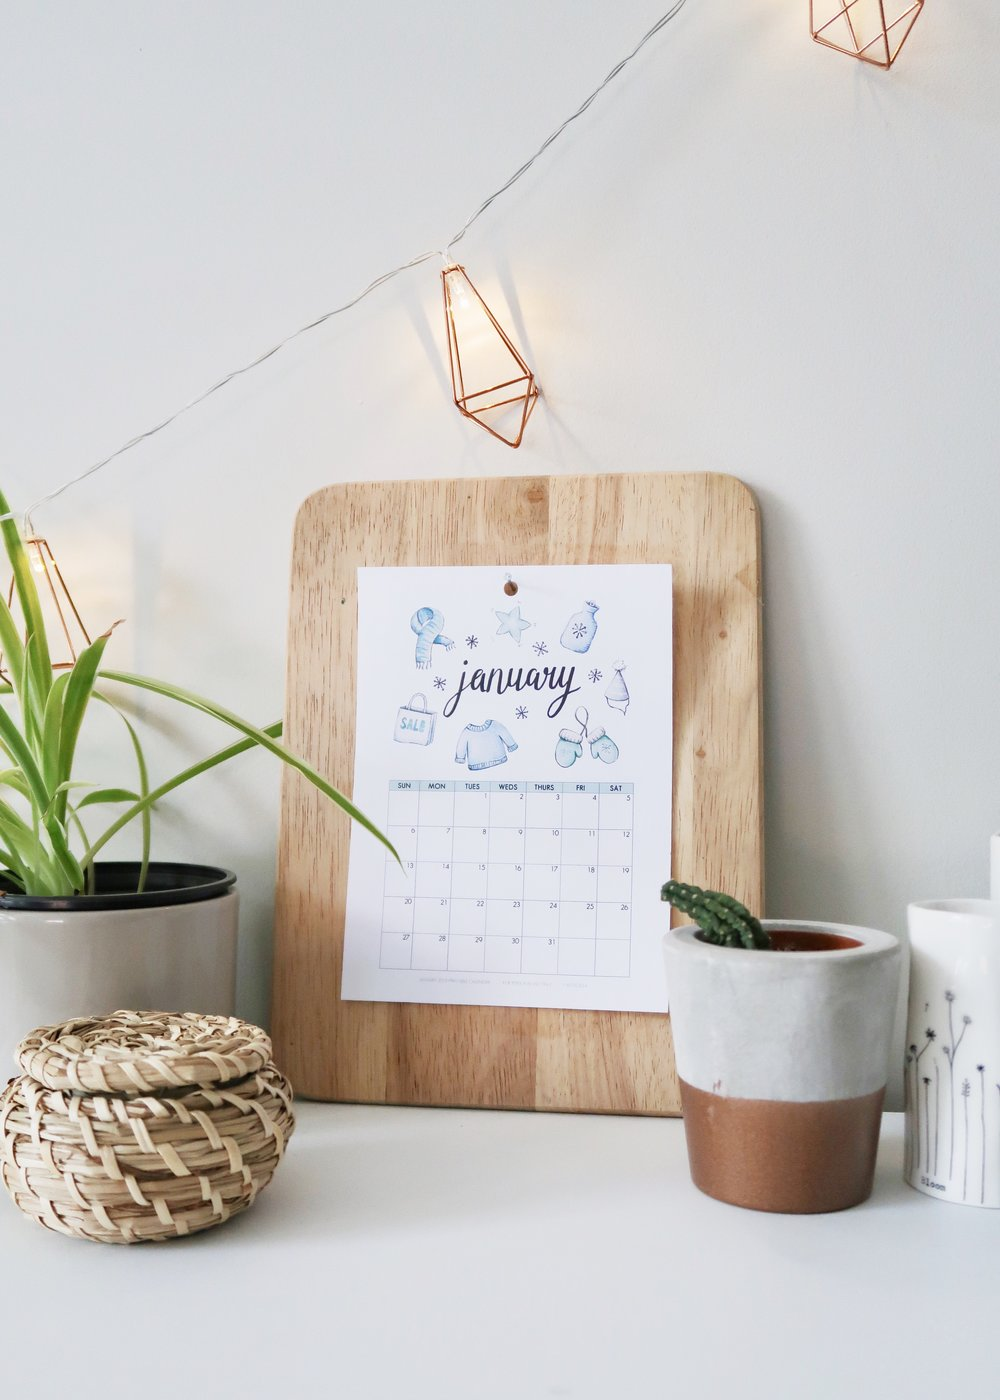 New Illustrated January 2019 Calendar (+ Free Printable) by Isoscella